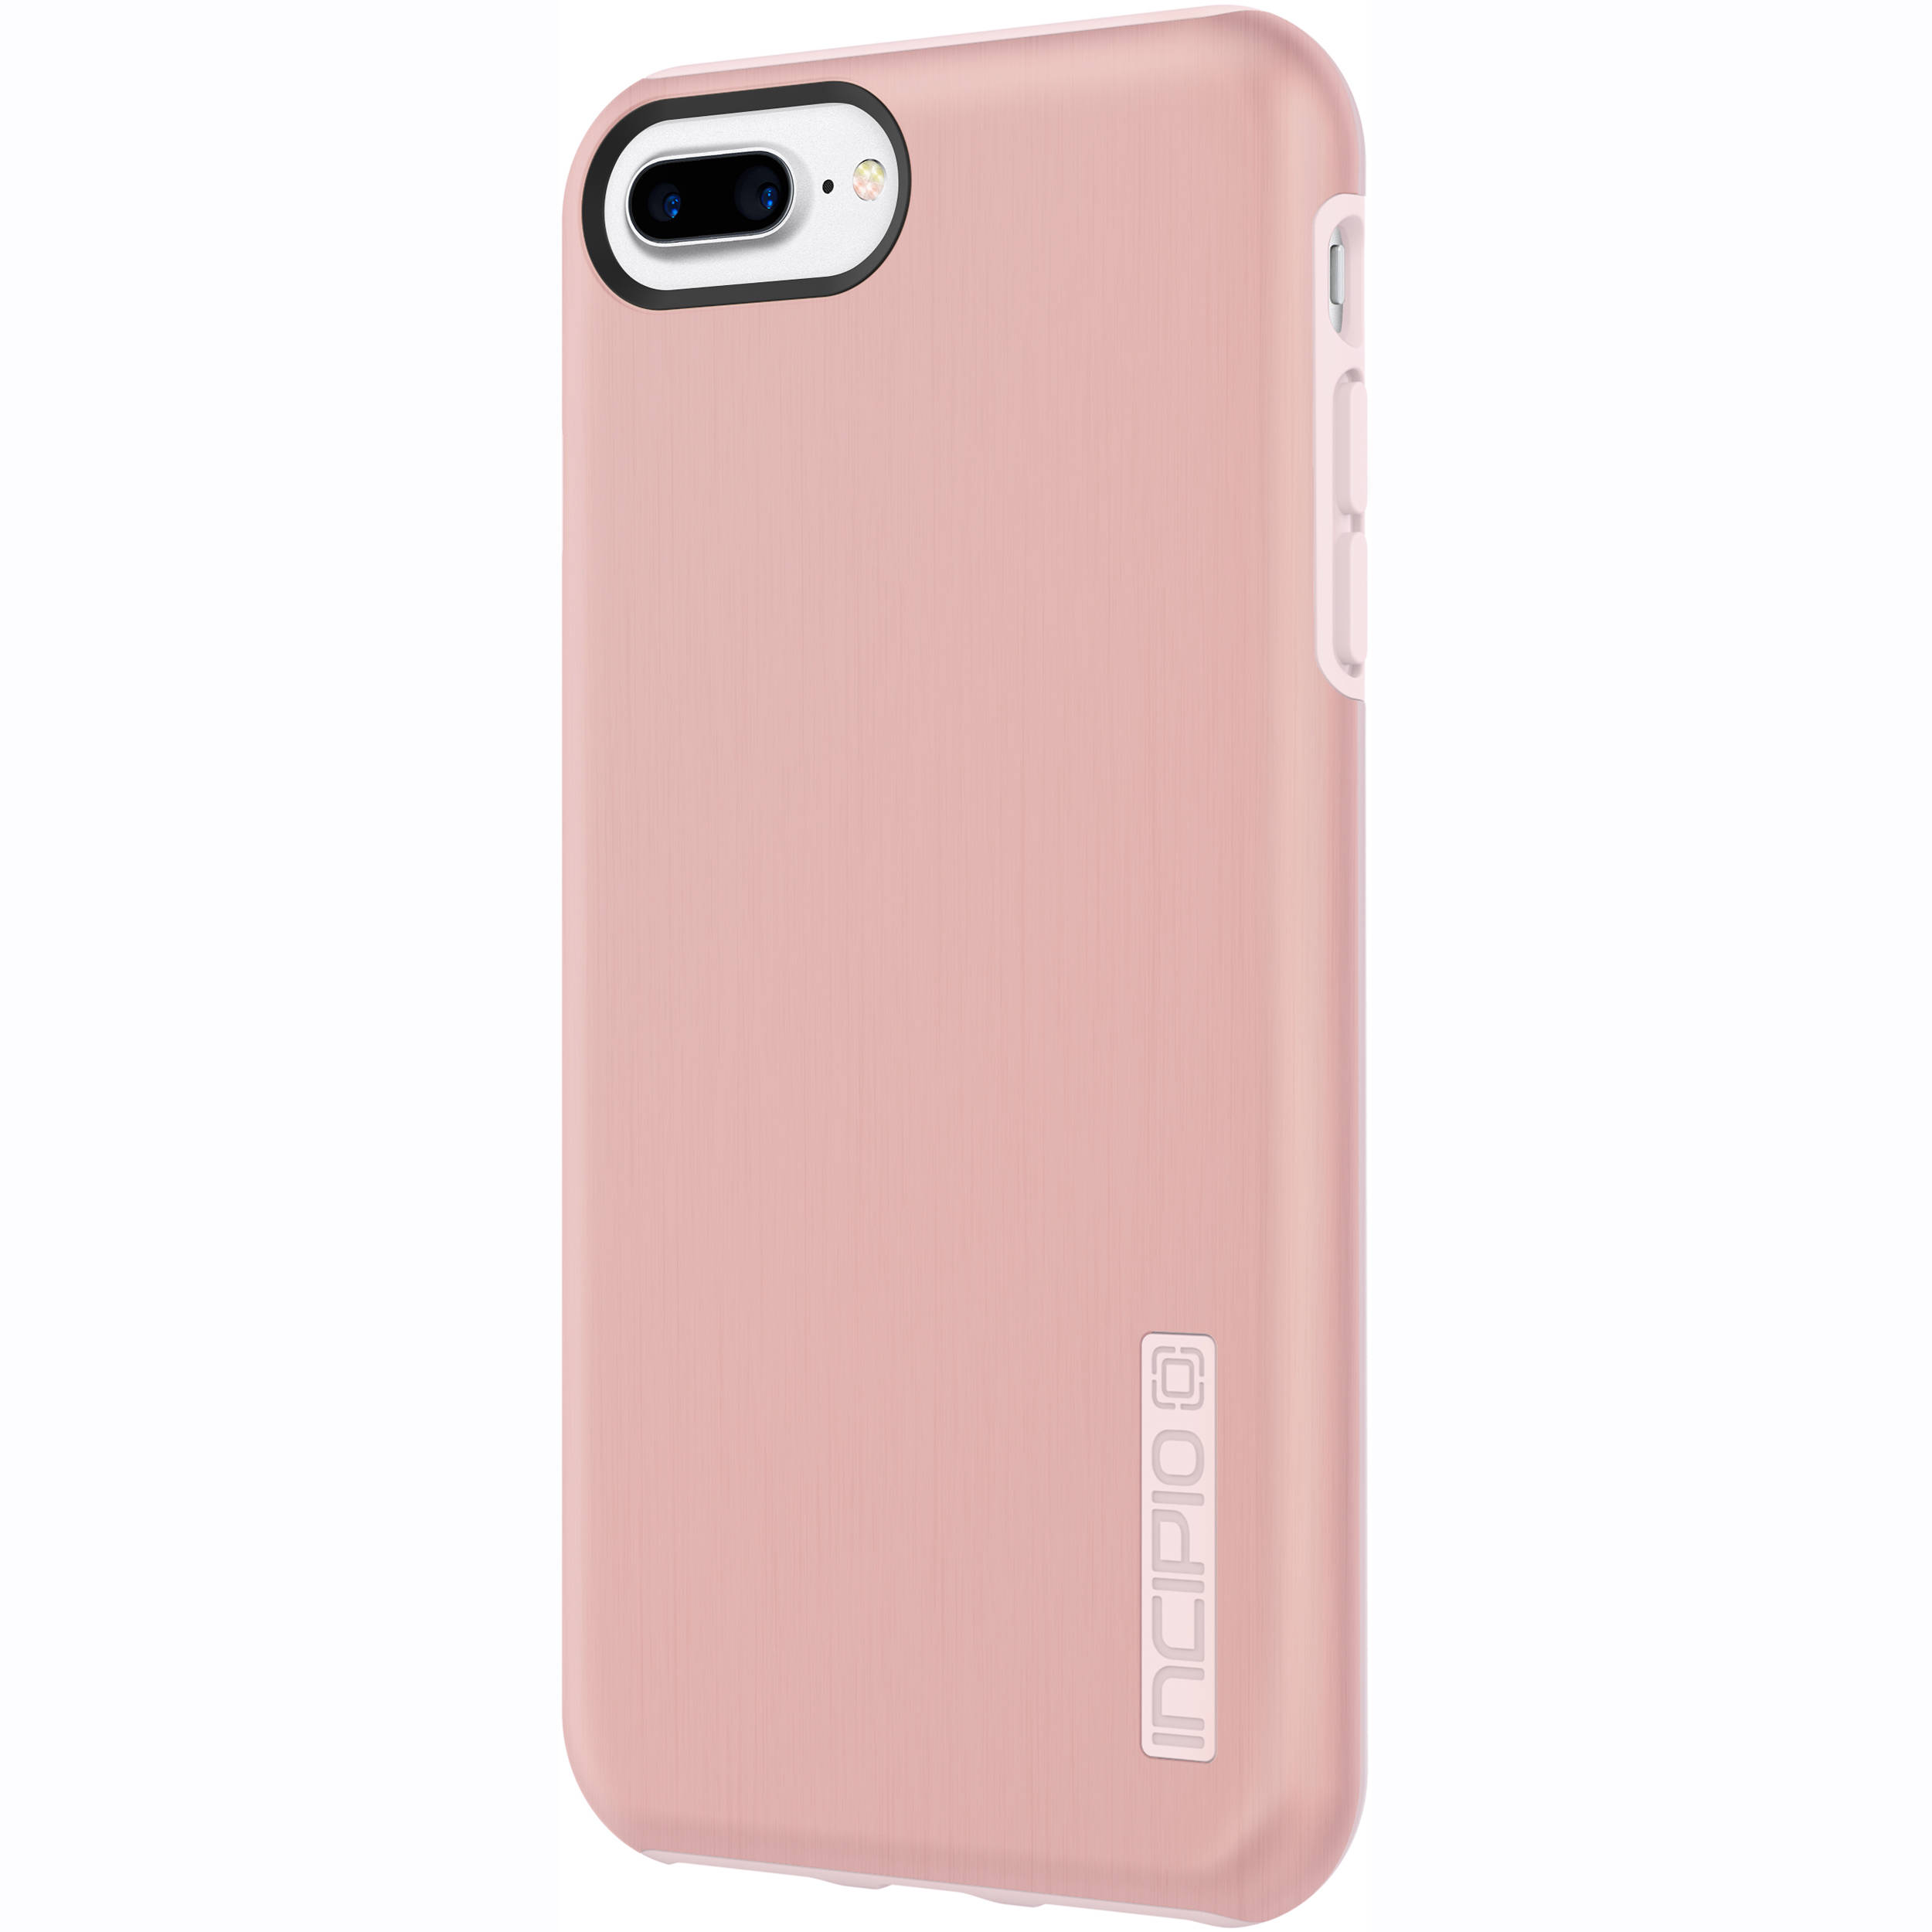 iphone pink gold incipio dualpro shine for iphone 7 plus iph 1492 rgp b amp h 12135